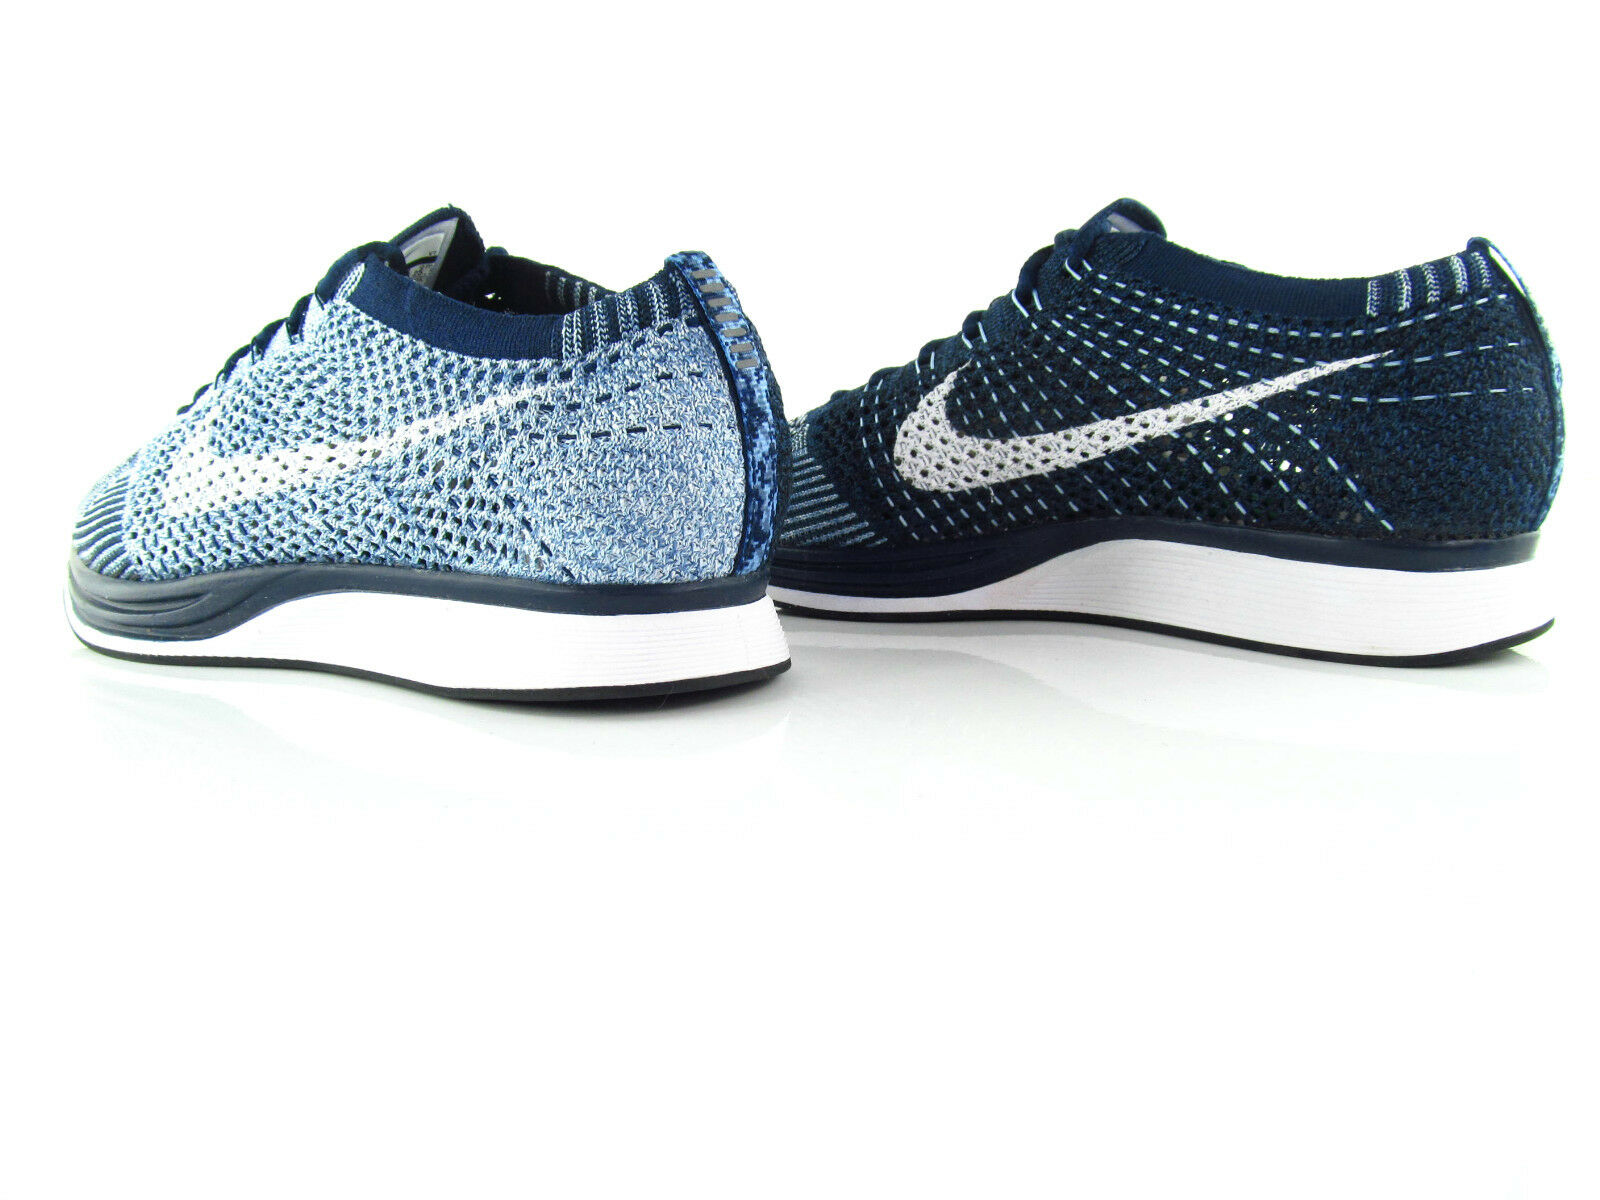 Nike Flyknit Racer Game Royal New Navy Blue Trainers Running New Royal Eur_36.5 - 38.5 9f8a59